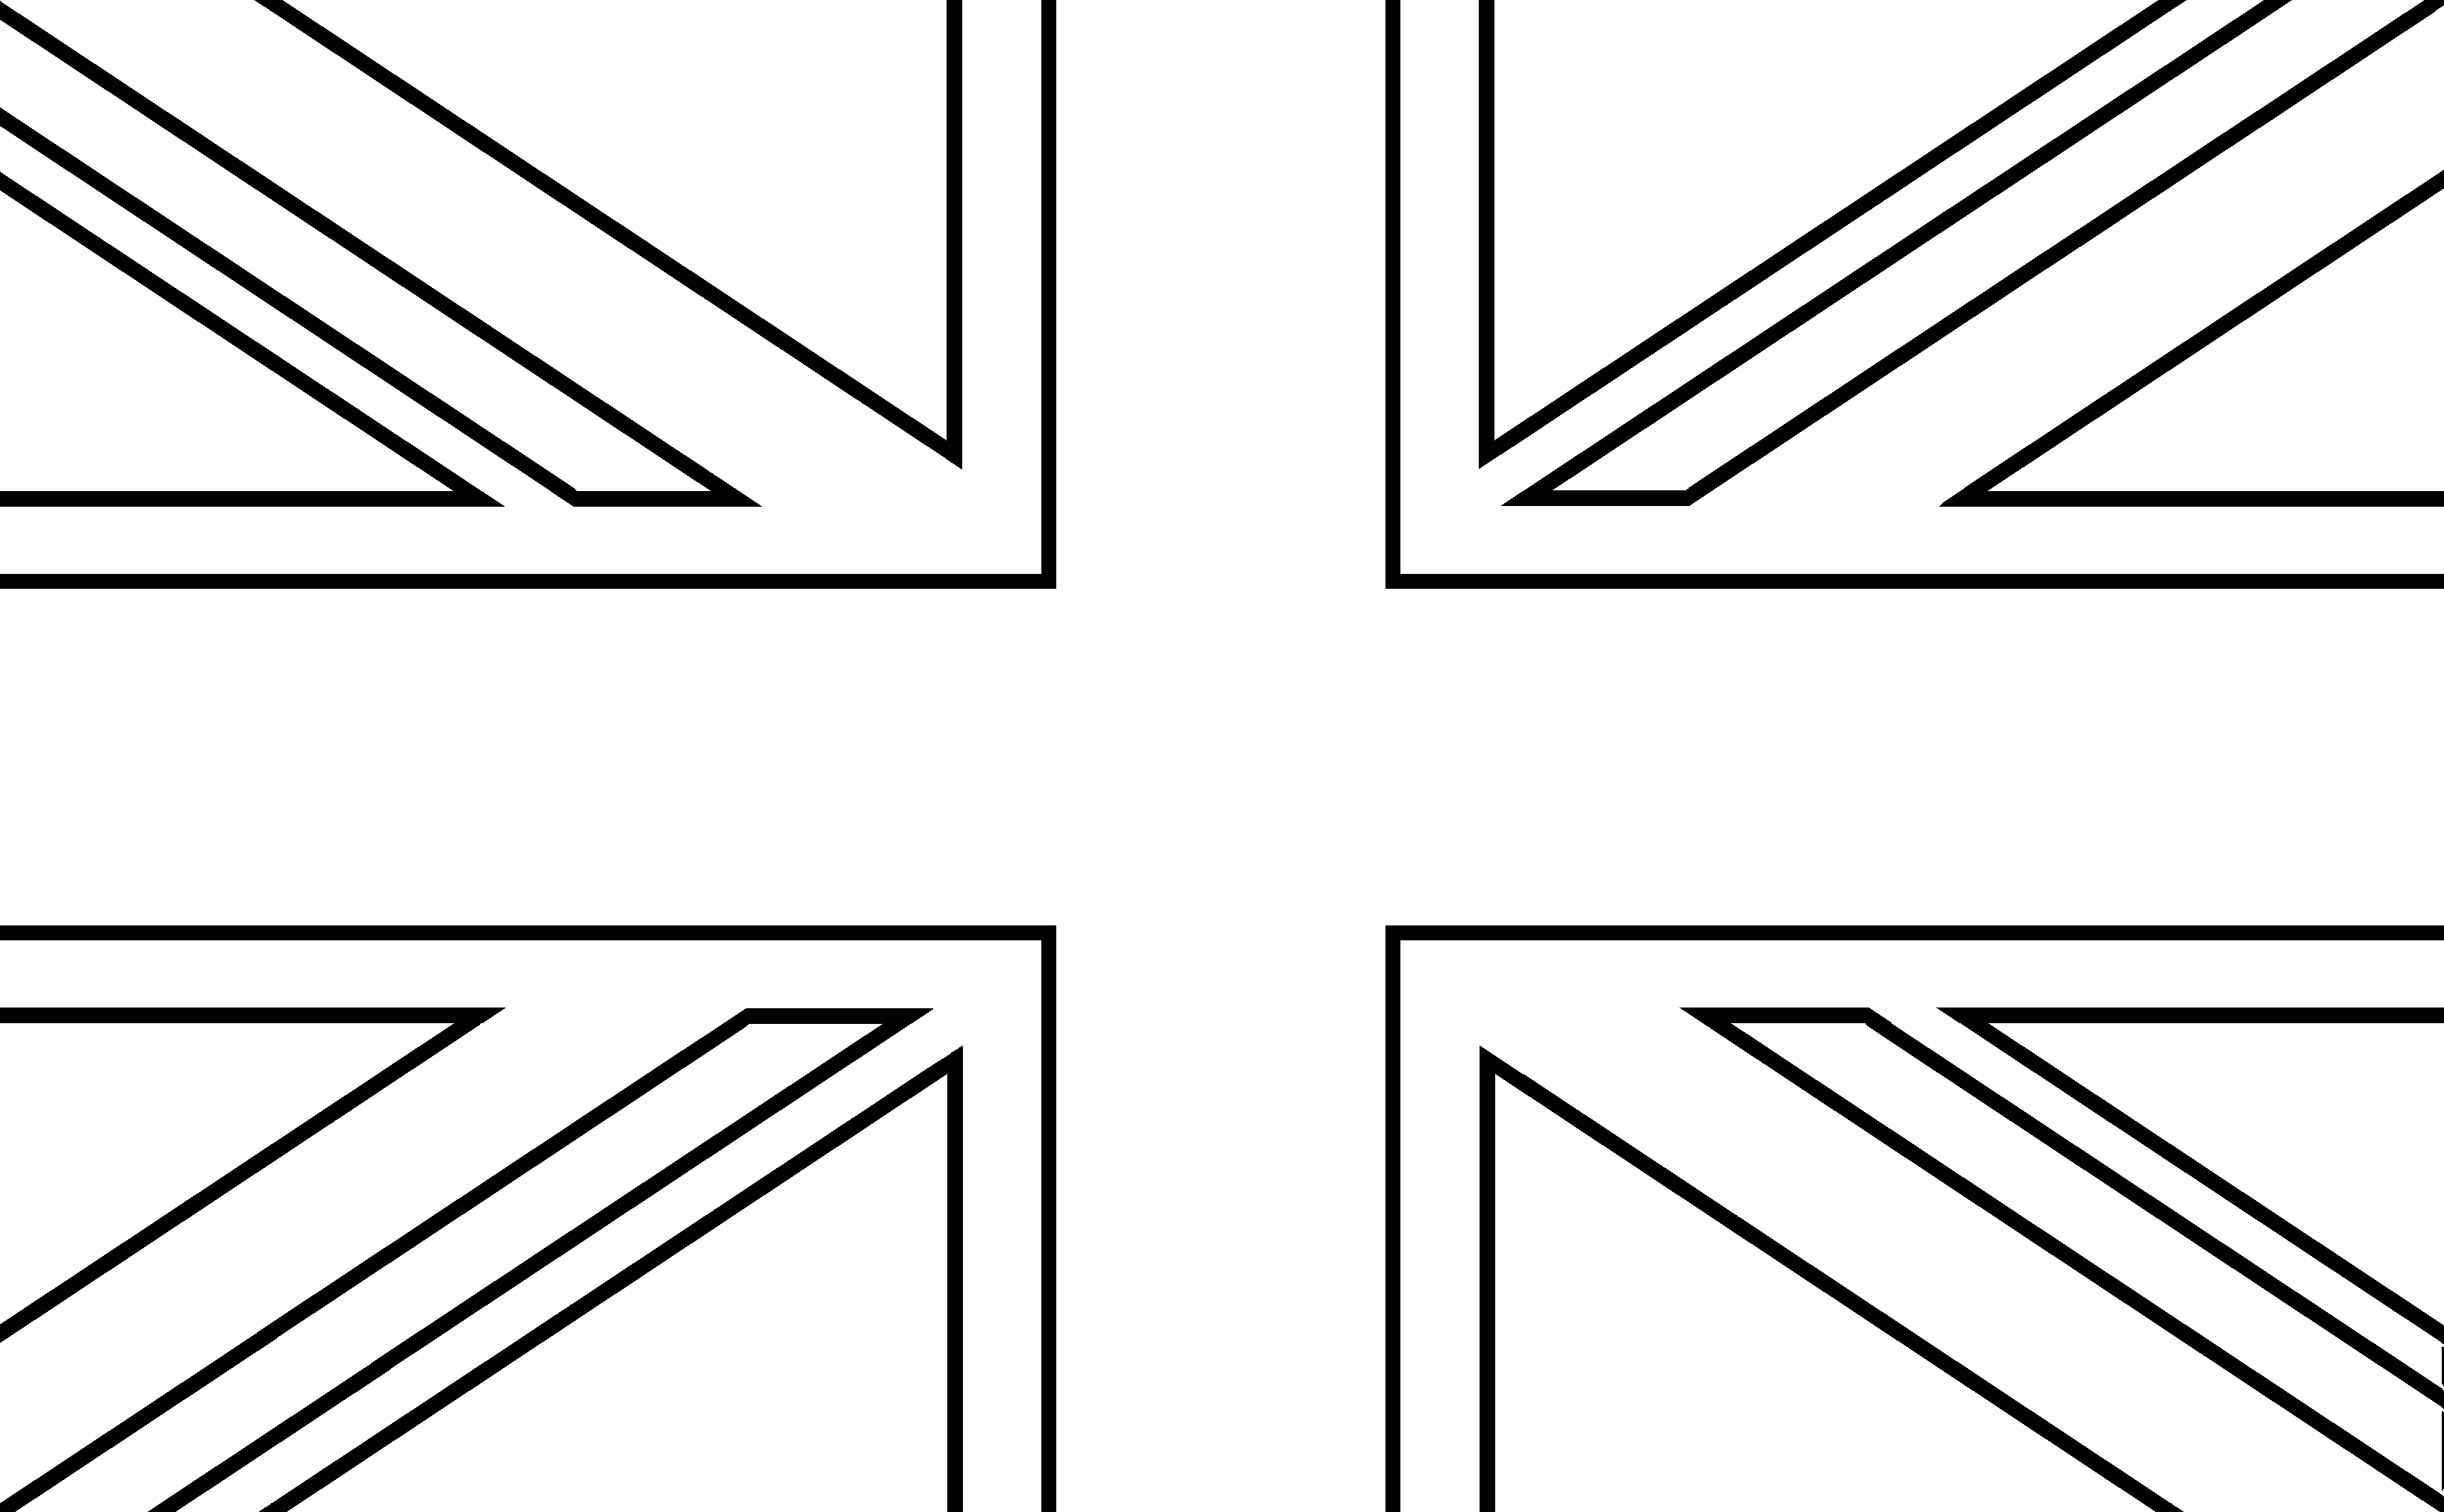 Colouring pictures of the union jack flag